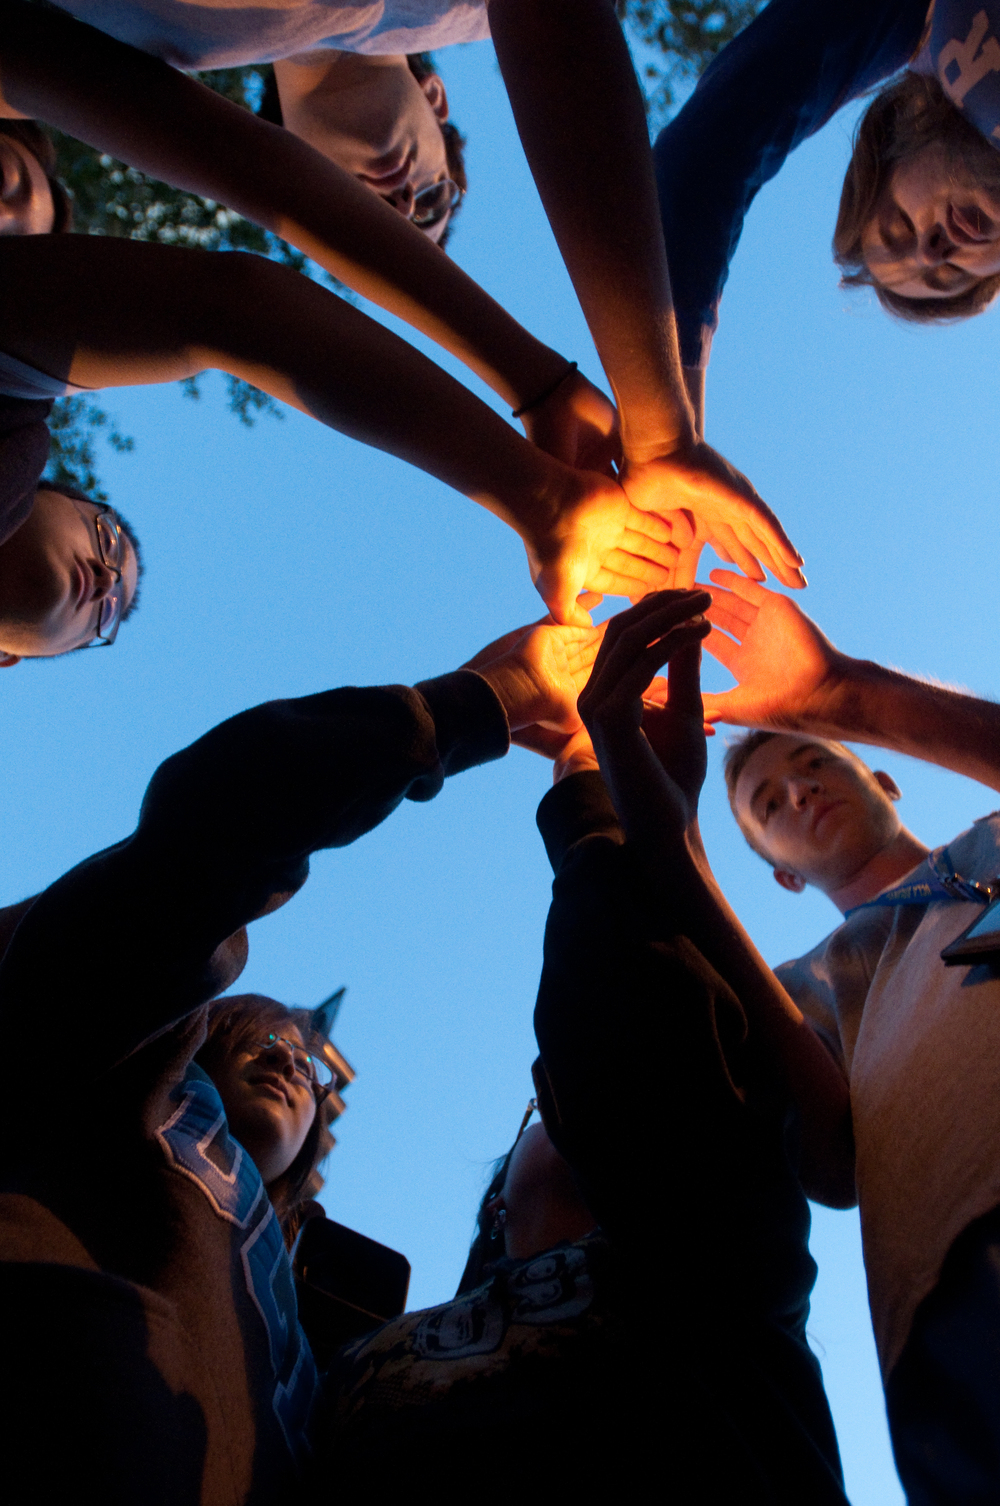 LOS ANGELES, CA – Students gather around a candle and share a moment in remembrance of John Wooden outside Ronald Reagan UCLA Medical Center on Friday, June 4, 2010.